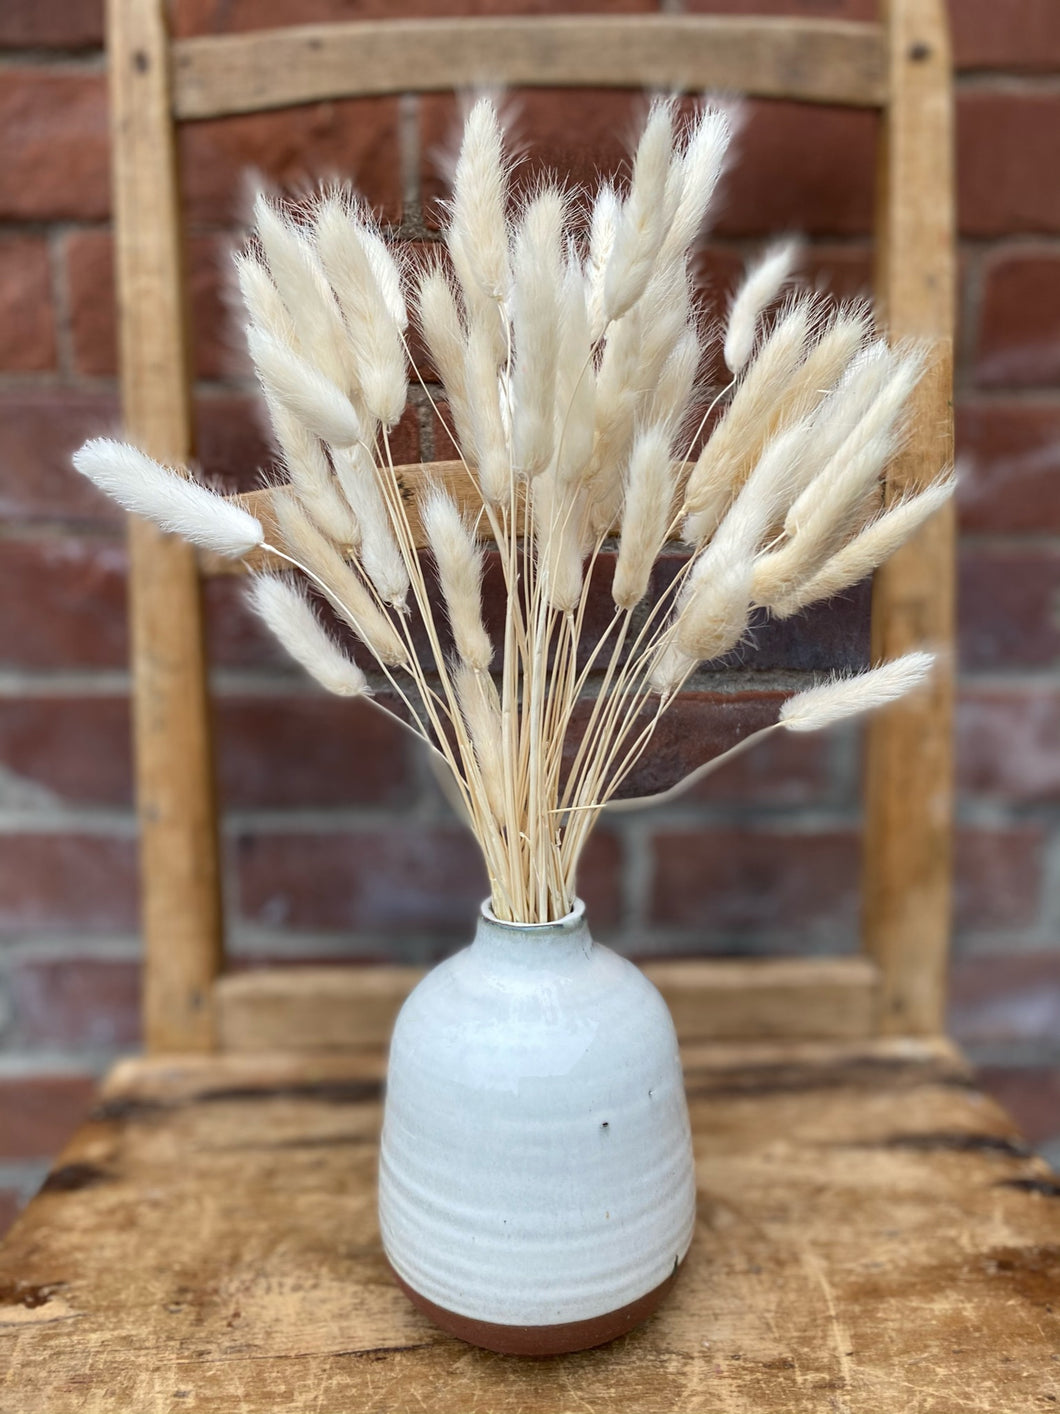 Bunny Tails in Ceramic Two-Tone Budvase